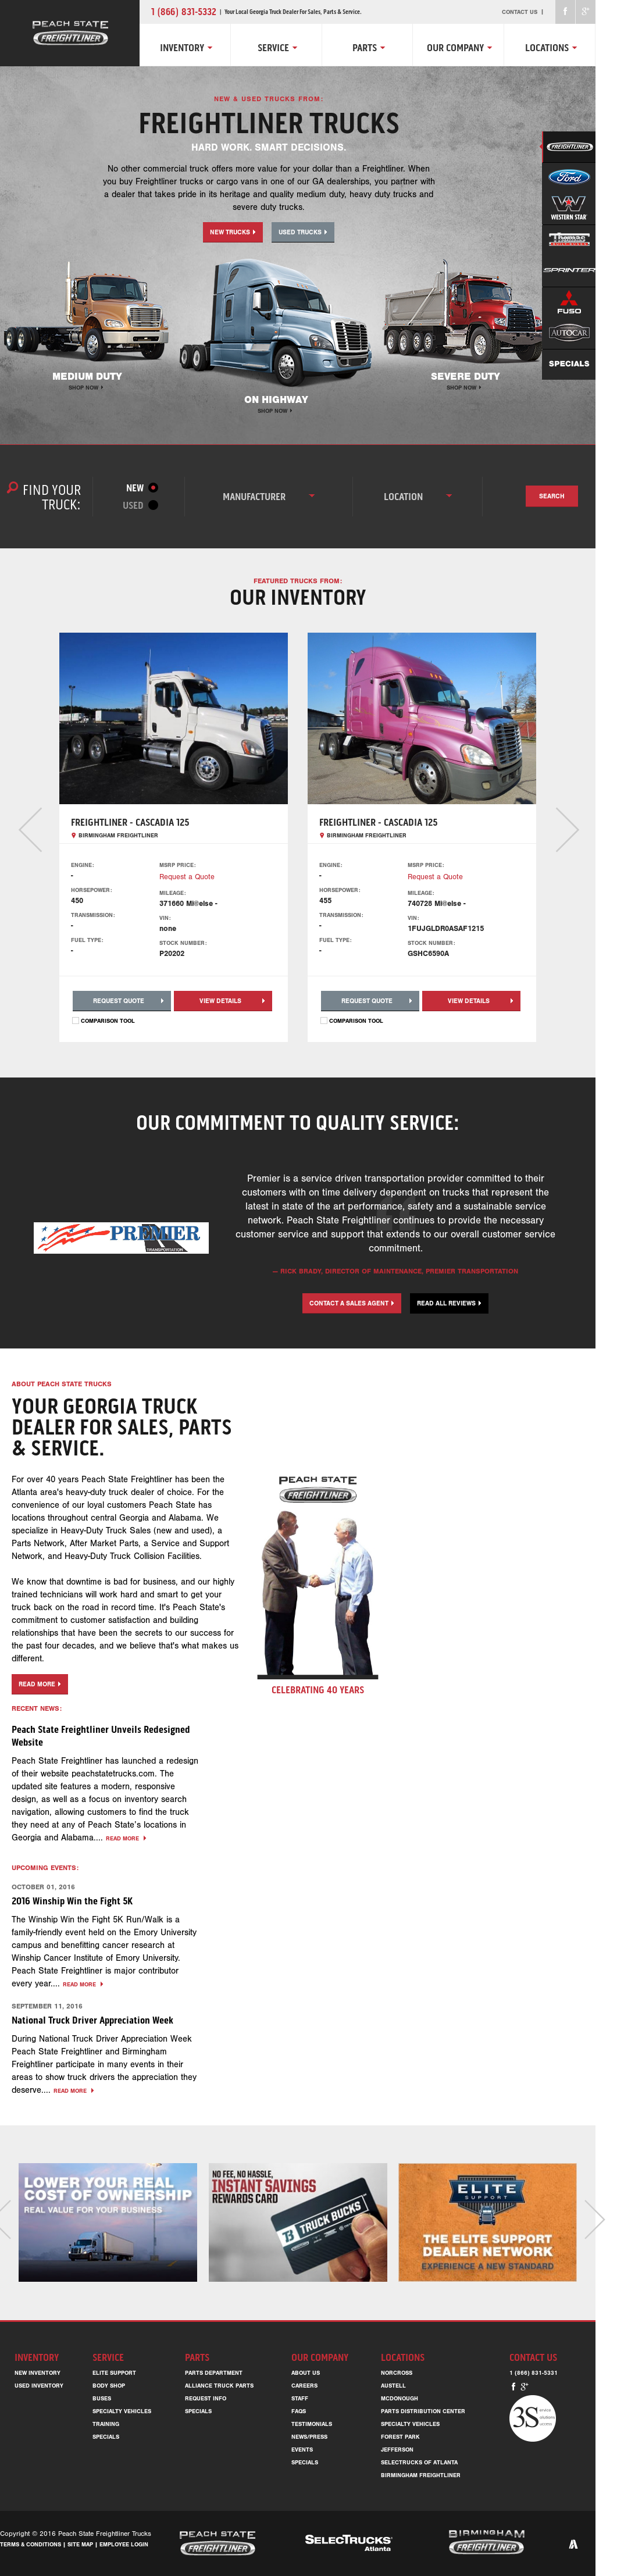 Peach State Freightliner petitors Revenue and Employees Owler